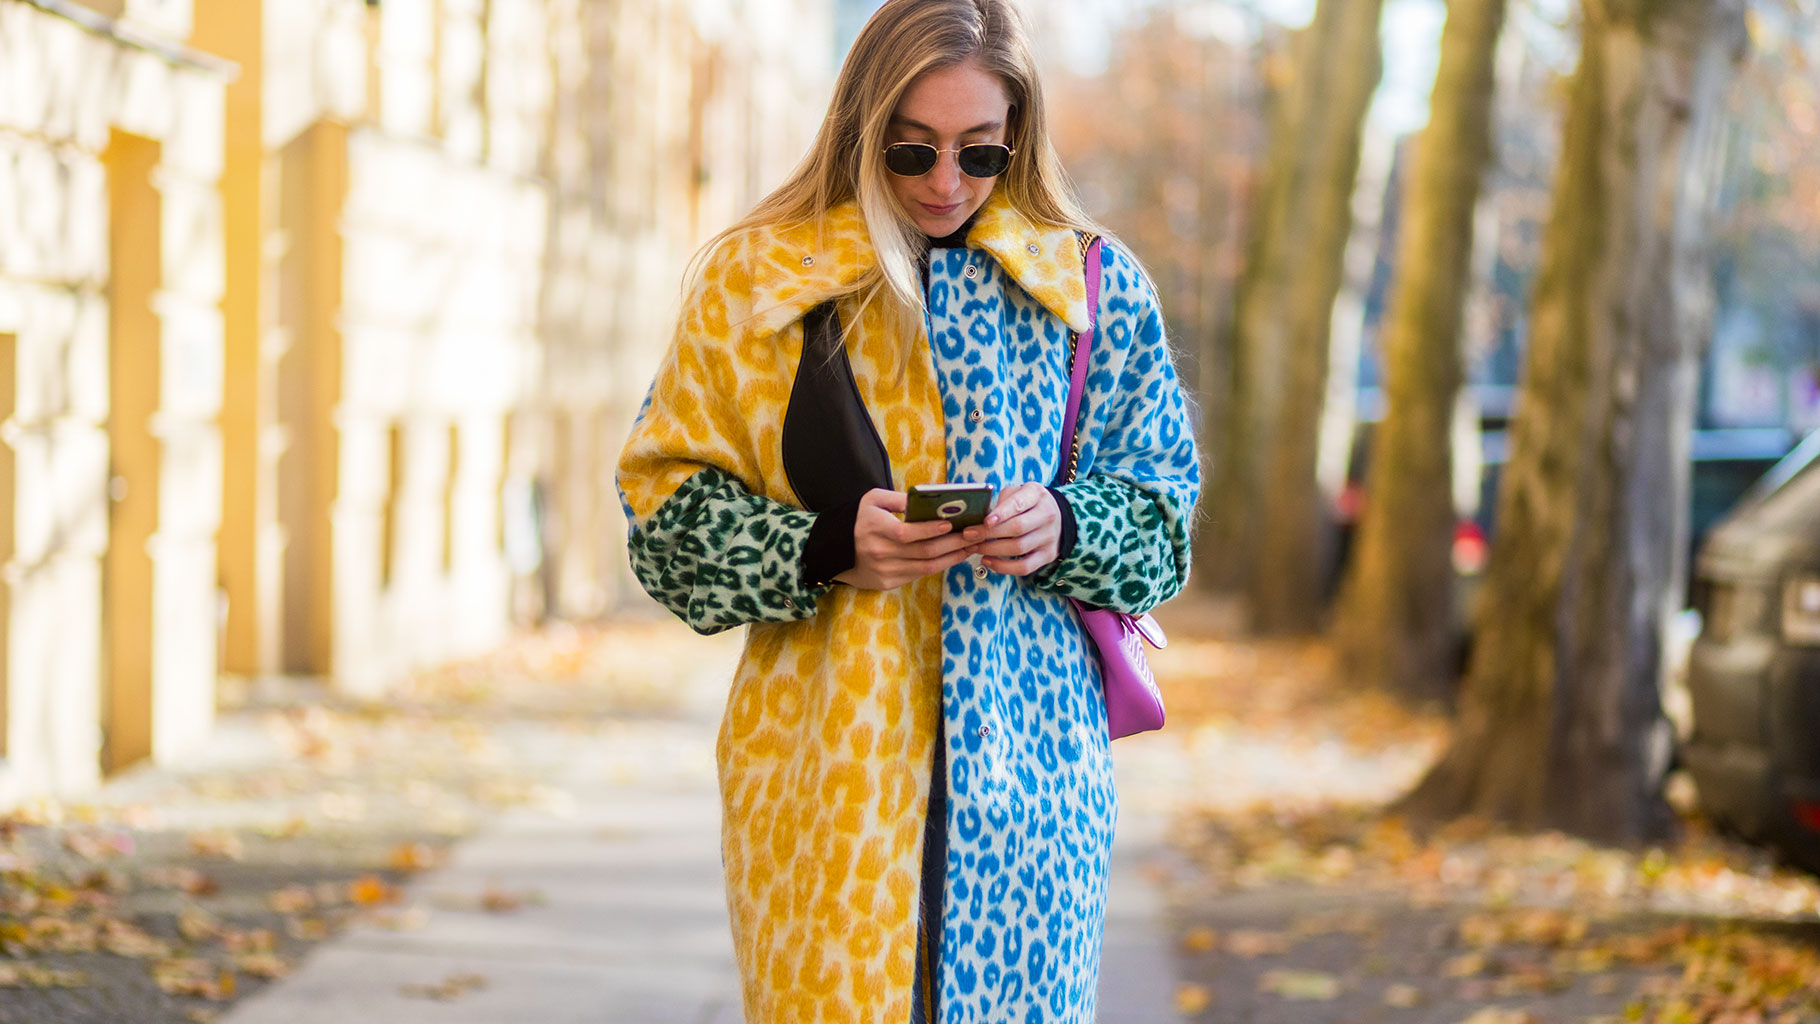 STYLECASTER | Winter Coat Ideas | Printed Coat Shopping Guide